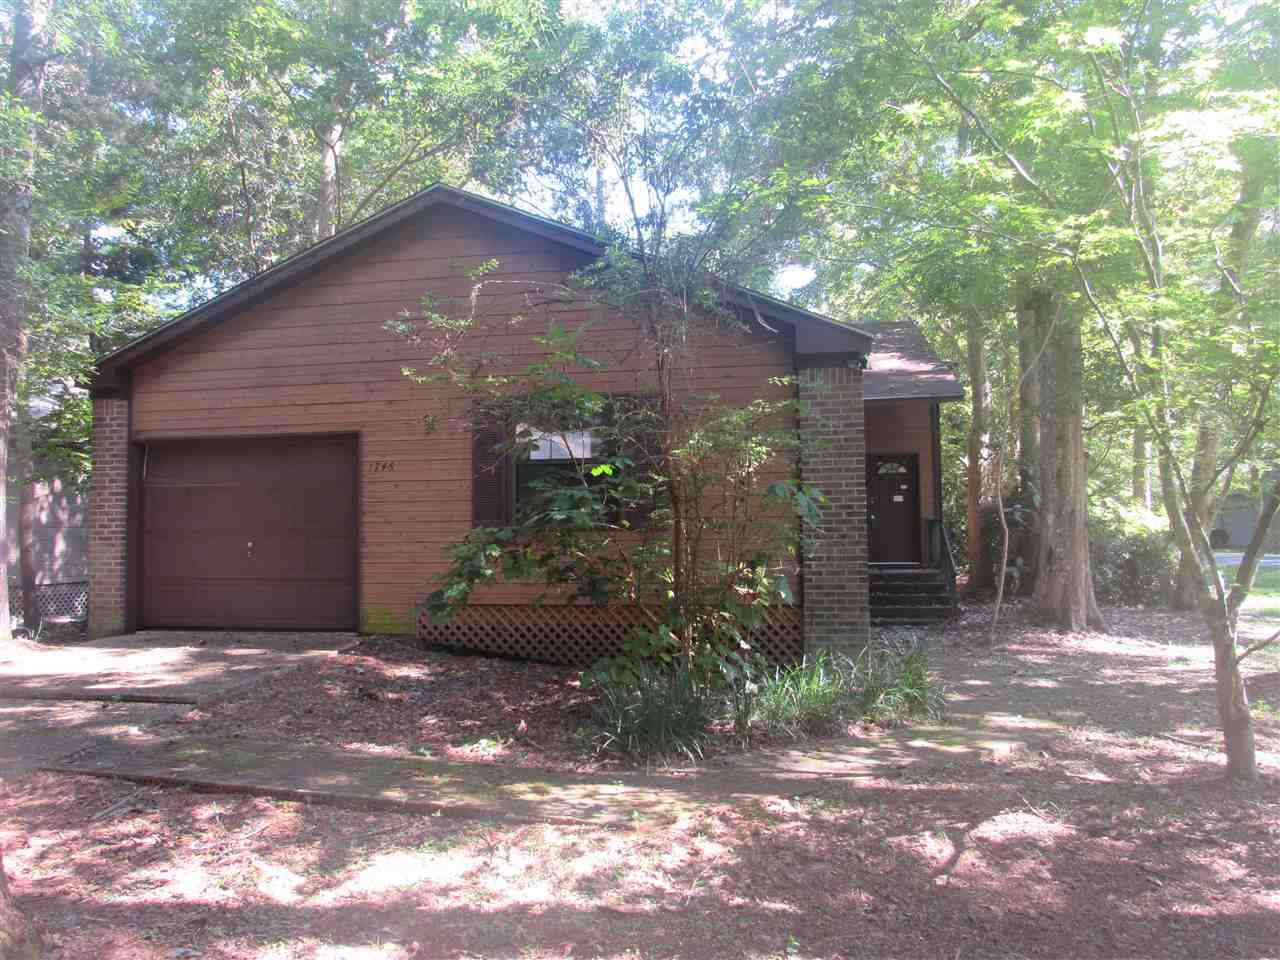 1746 Silverwood Drive Tallahassee, FL 32301 in Blairstone Forest Photo 1